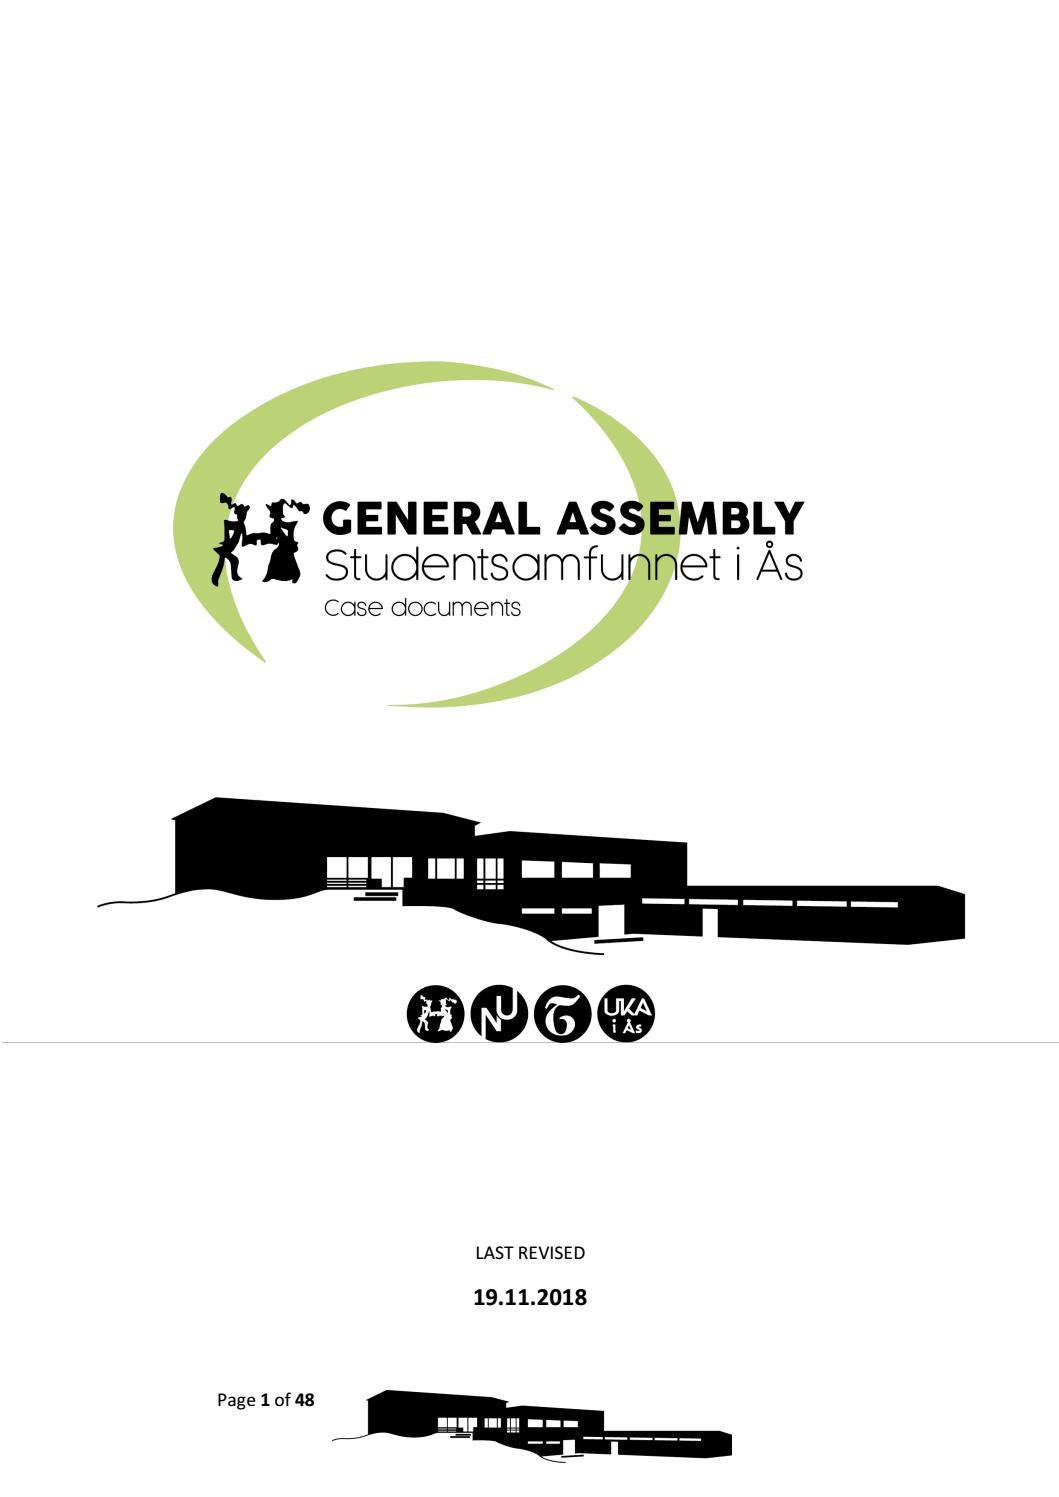 General Assembly Fall 2018 by Studentsamfunnet i Ås - issuu